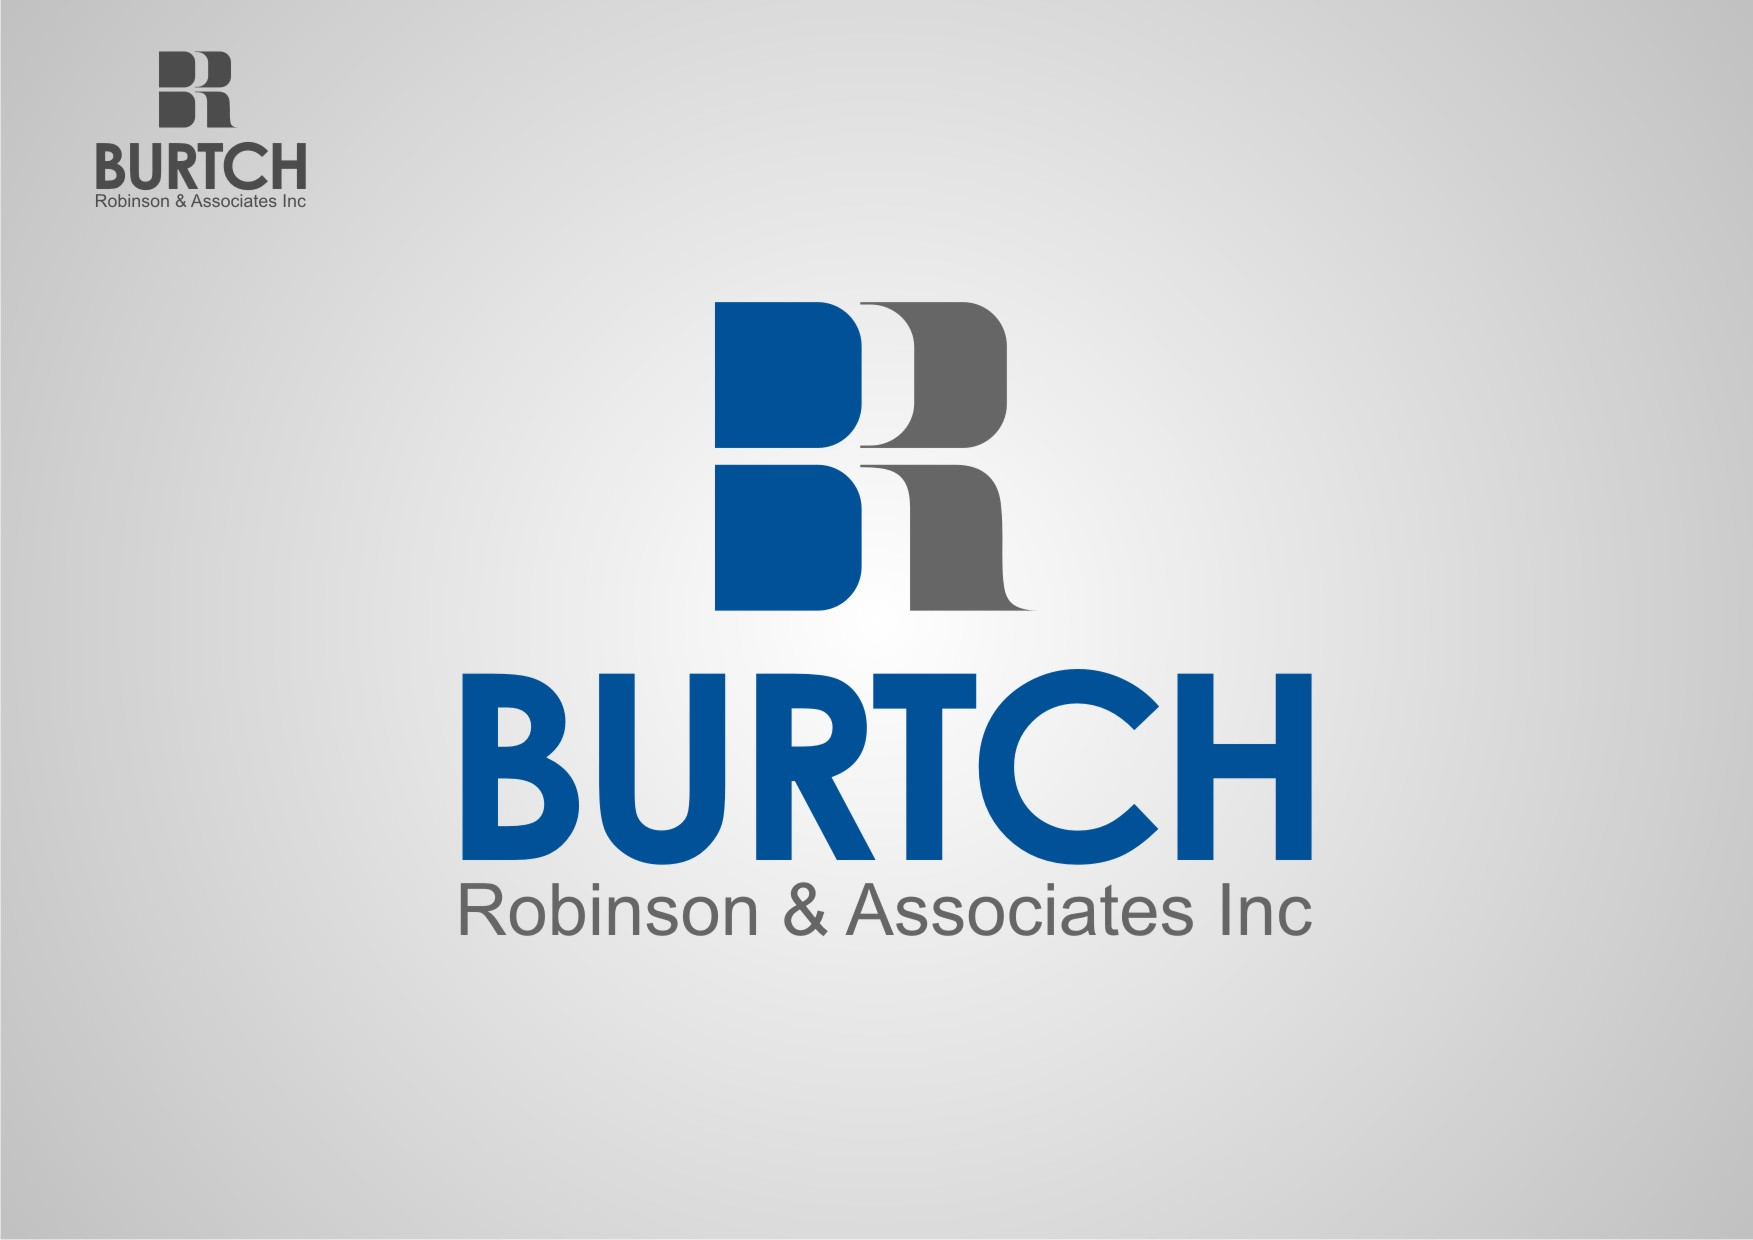 Logo Design by Private User - Entry No. 17 in the Logo Design Contest Unique Logo Design Wanted for Burtch, Robinson & Associates Inc..